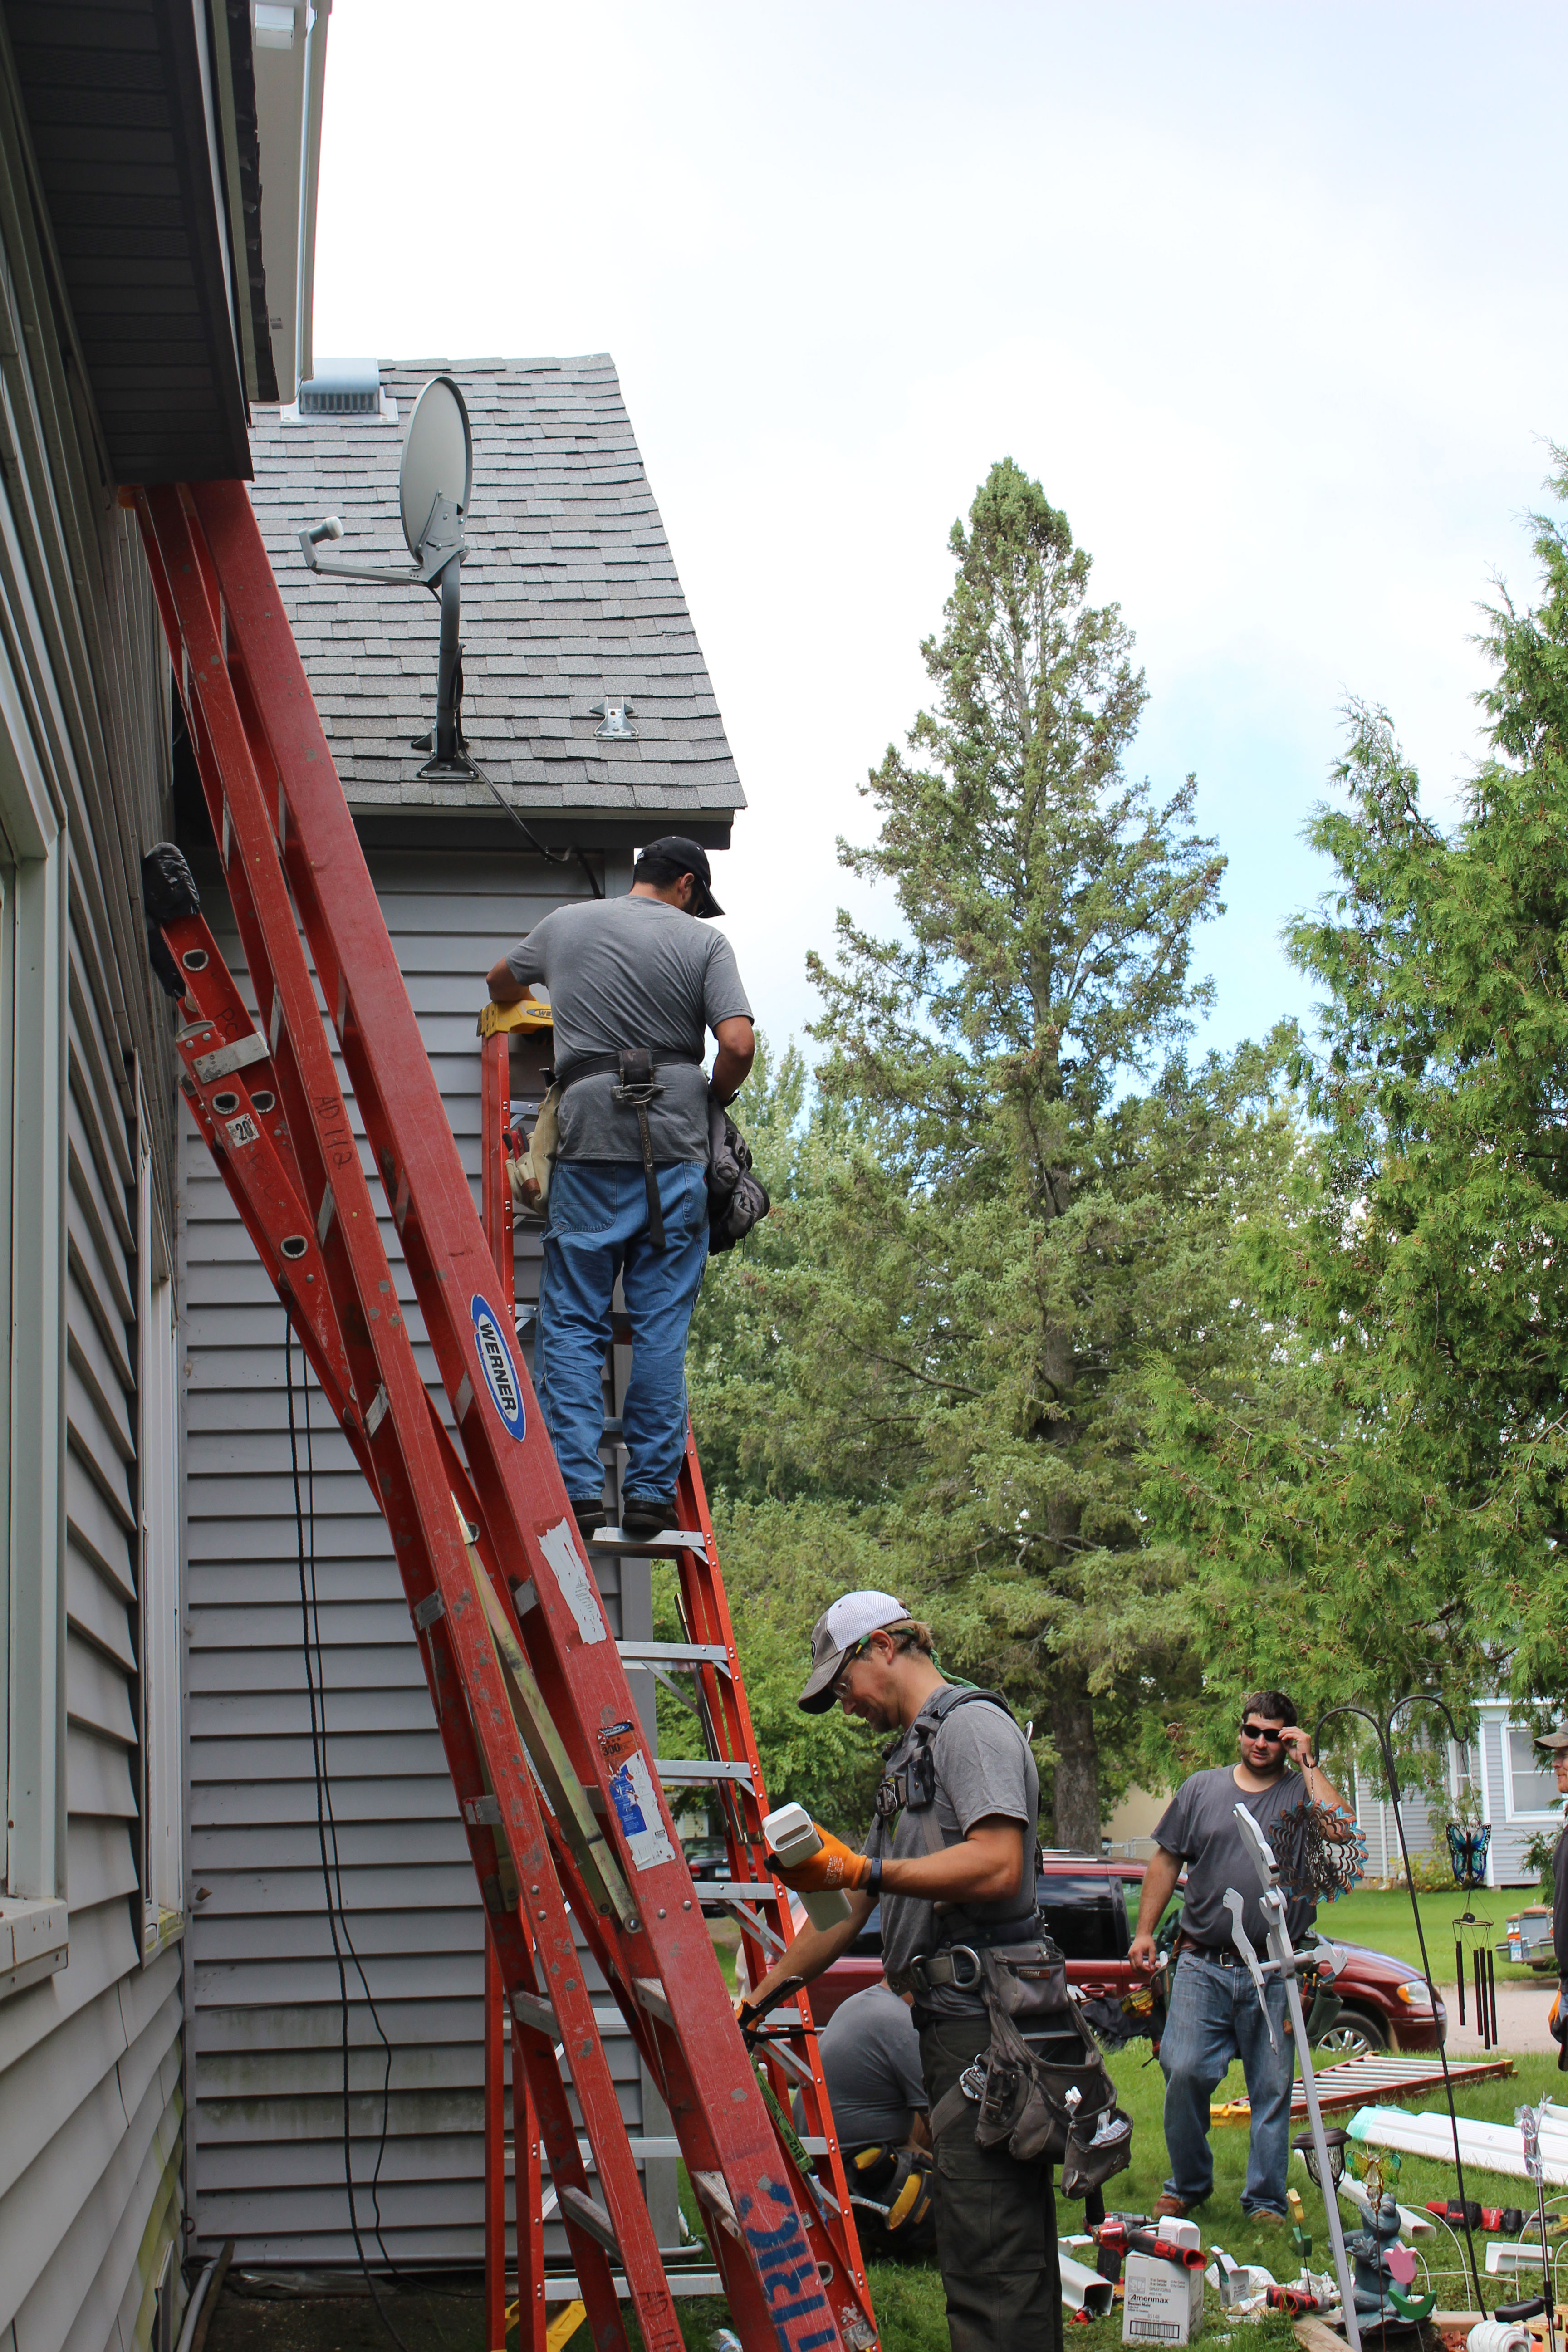 Our partner – PCL Construction – joins the event to install rain gutters on the entire house